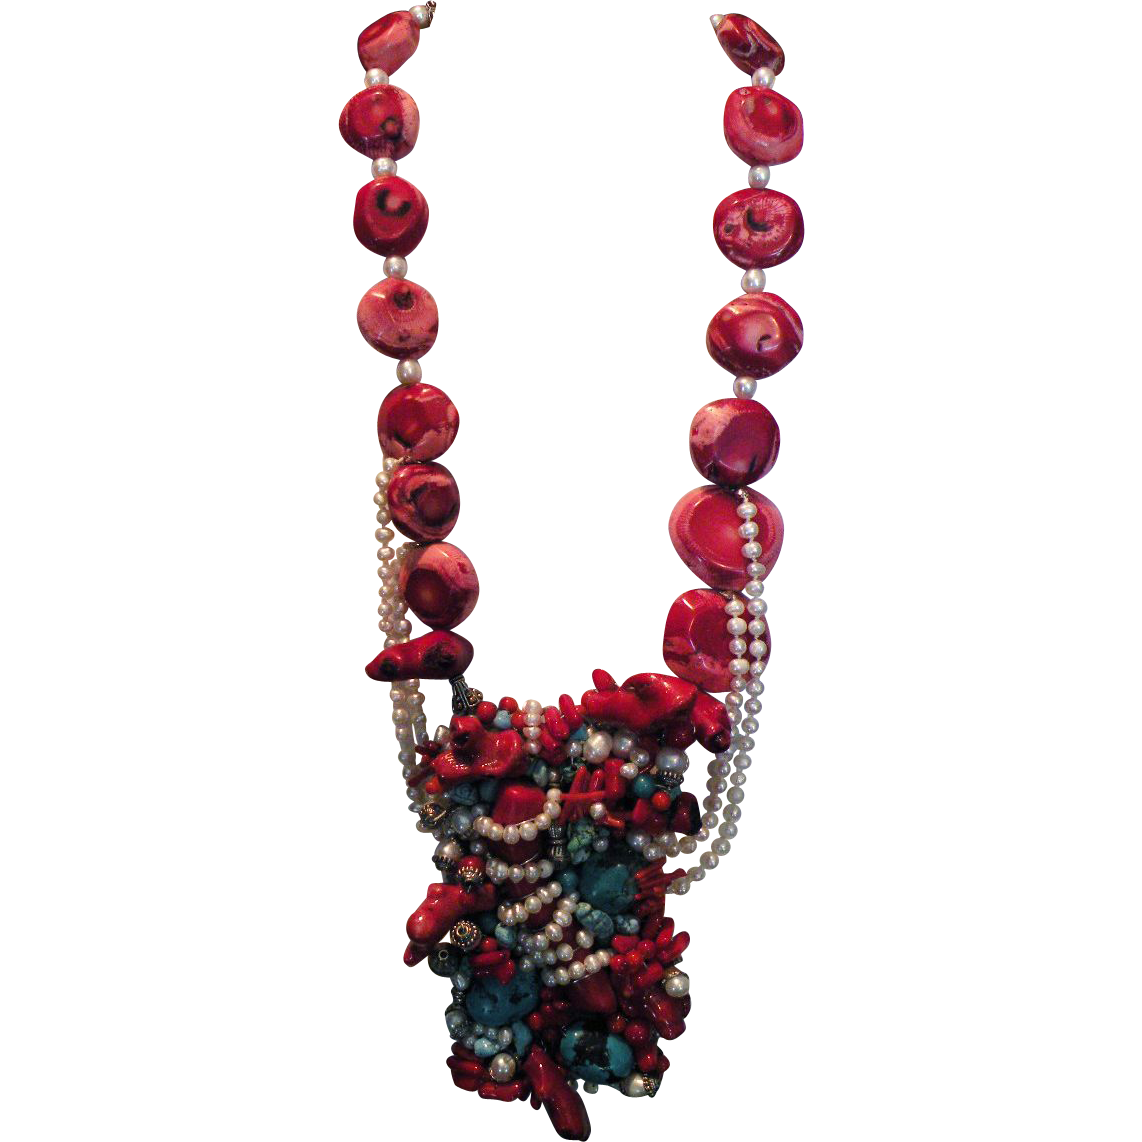 Red Coral & Pearls : Princess Hiawatha